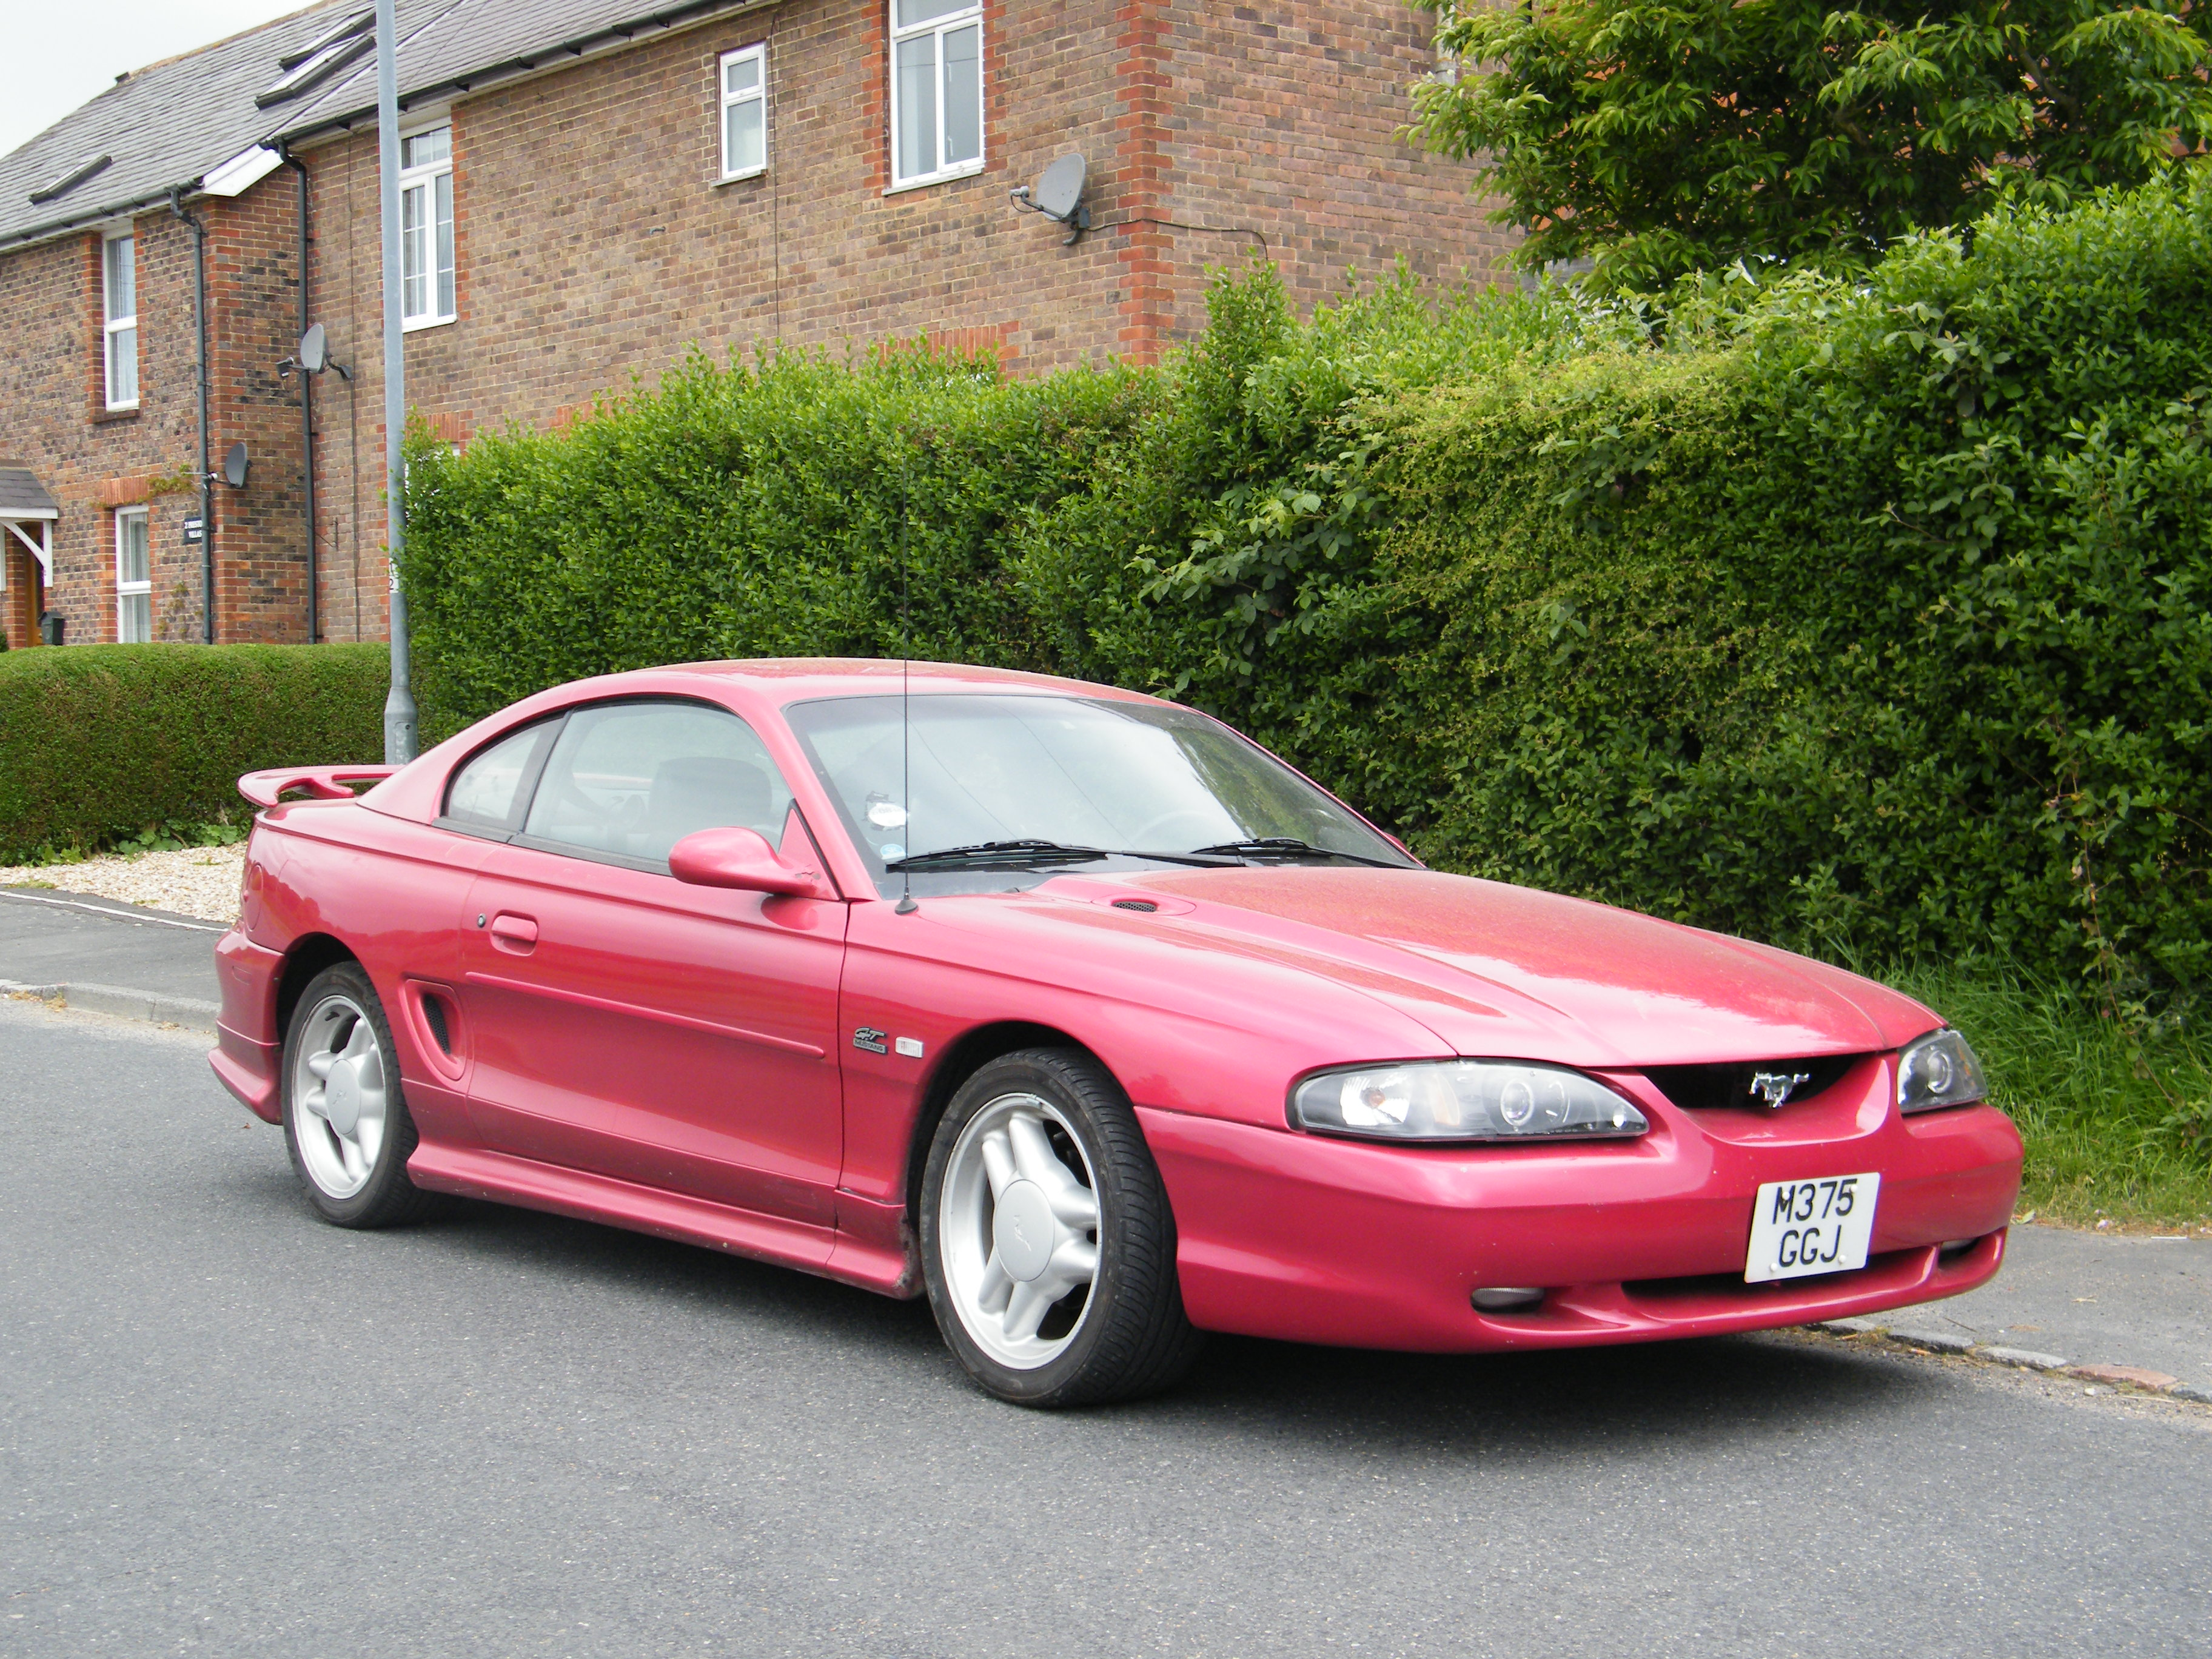 1994 ford mustang gt images pictures and videos. Black Bedroom Furniture Sets. Home Design Ideas